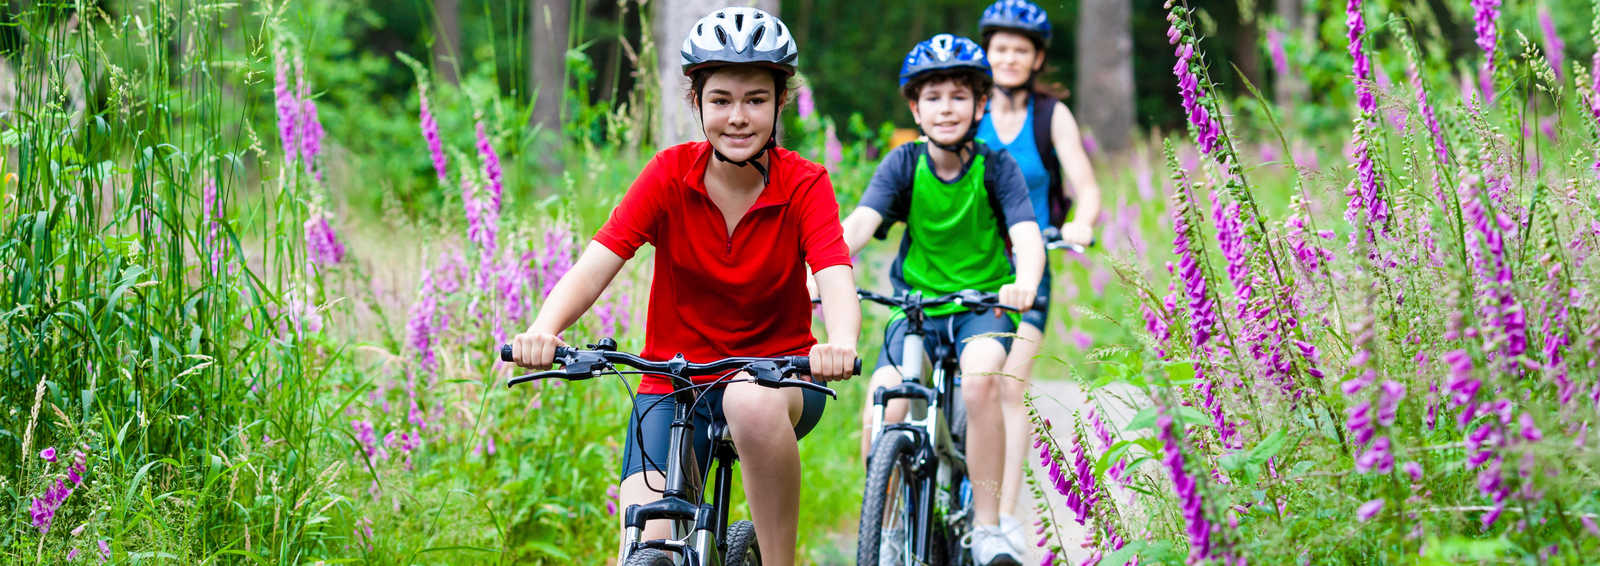 Family cycling through woodland